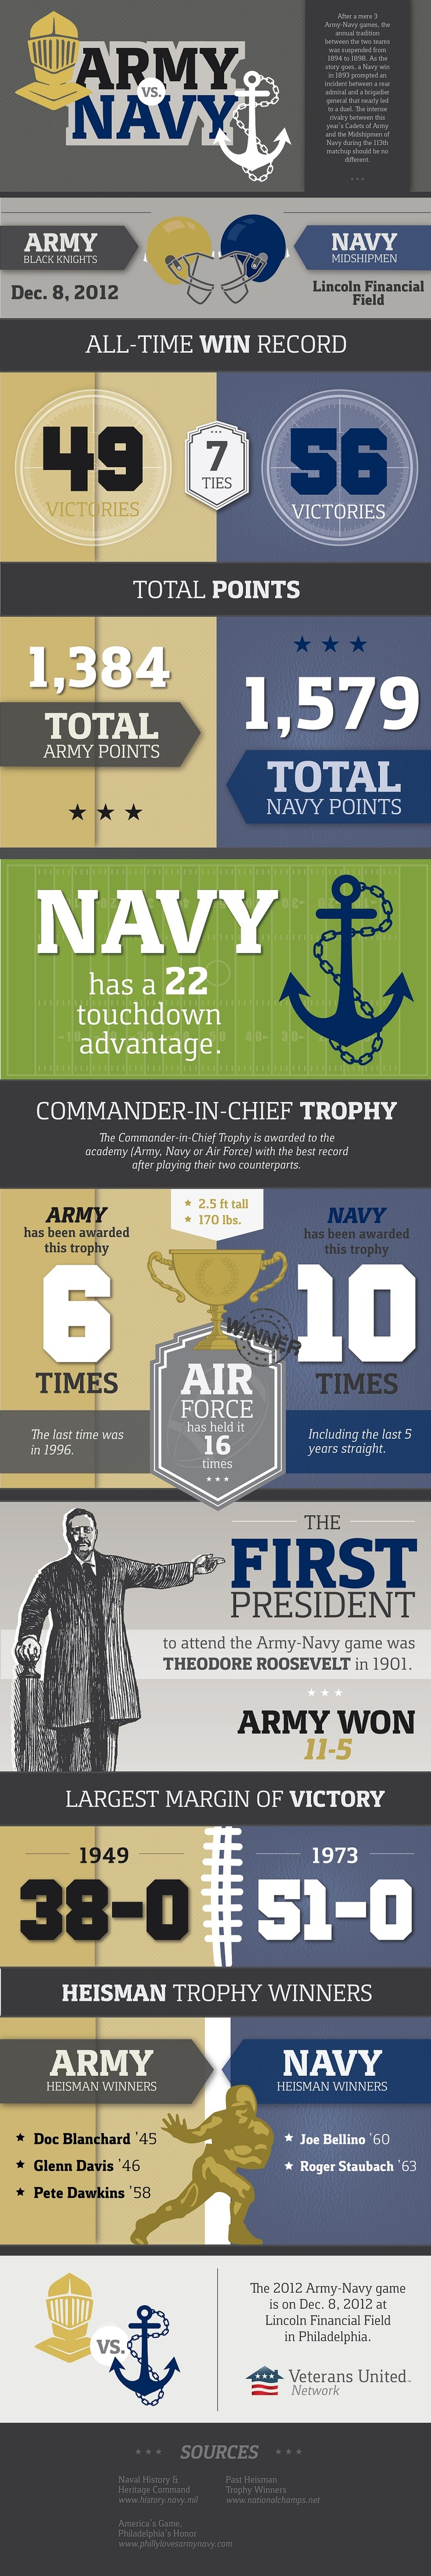 The 2012 Army Navy Game is coming up! December 8th! Who are you rooting for?